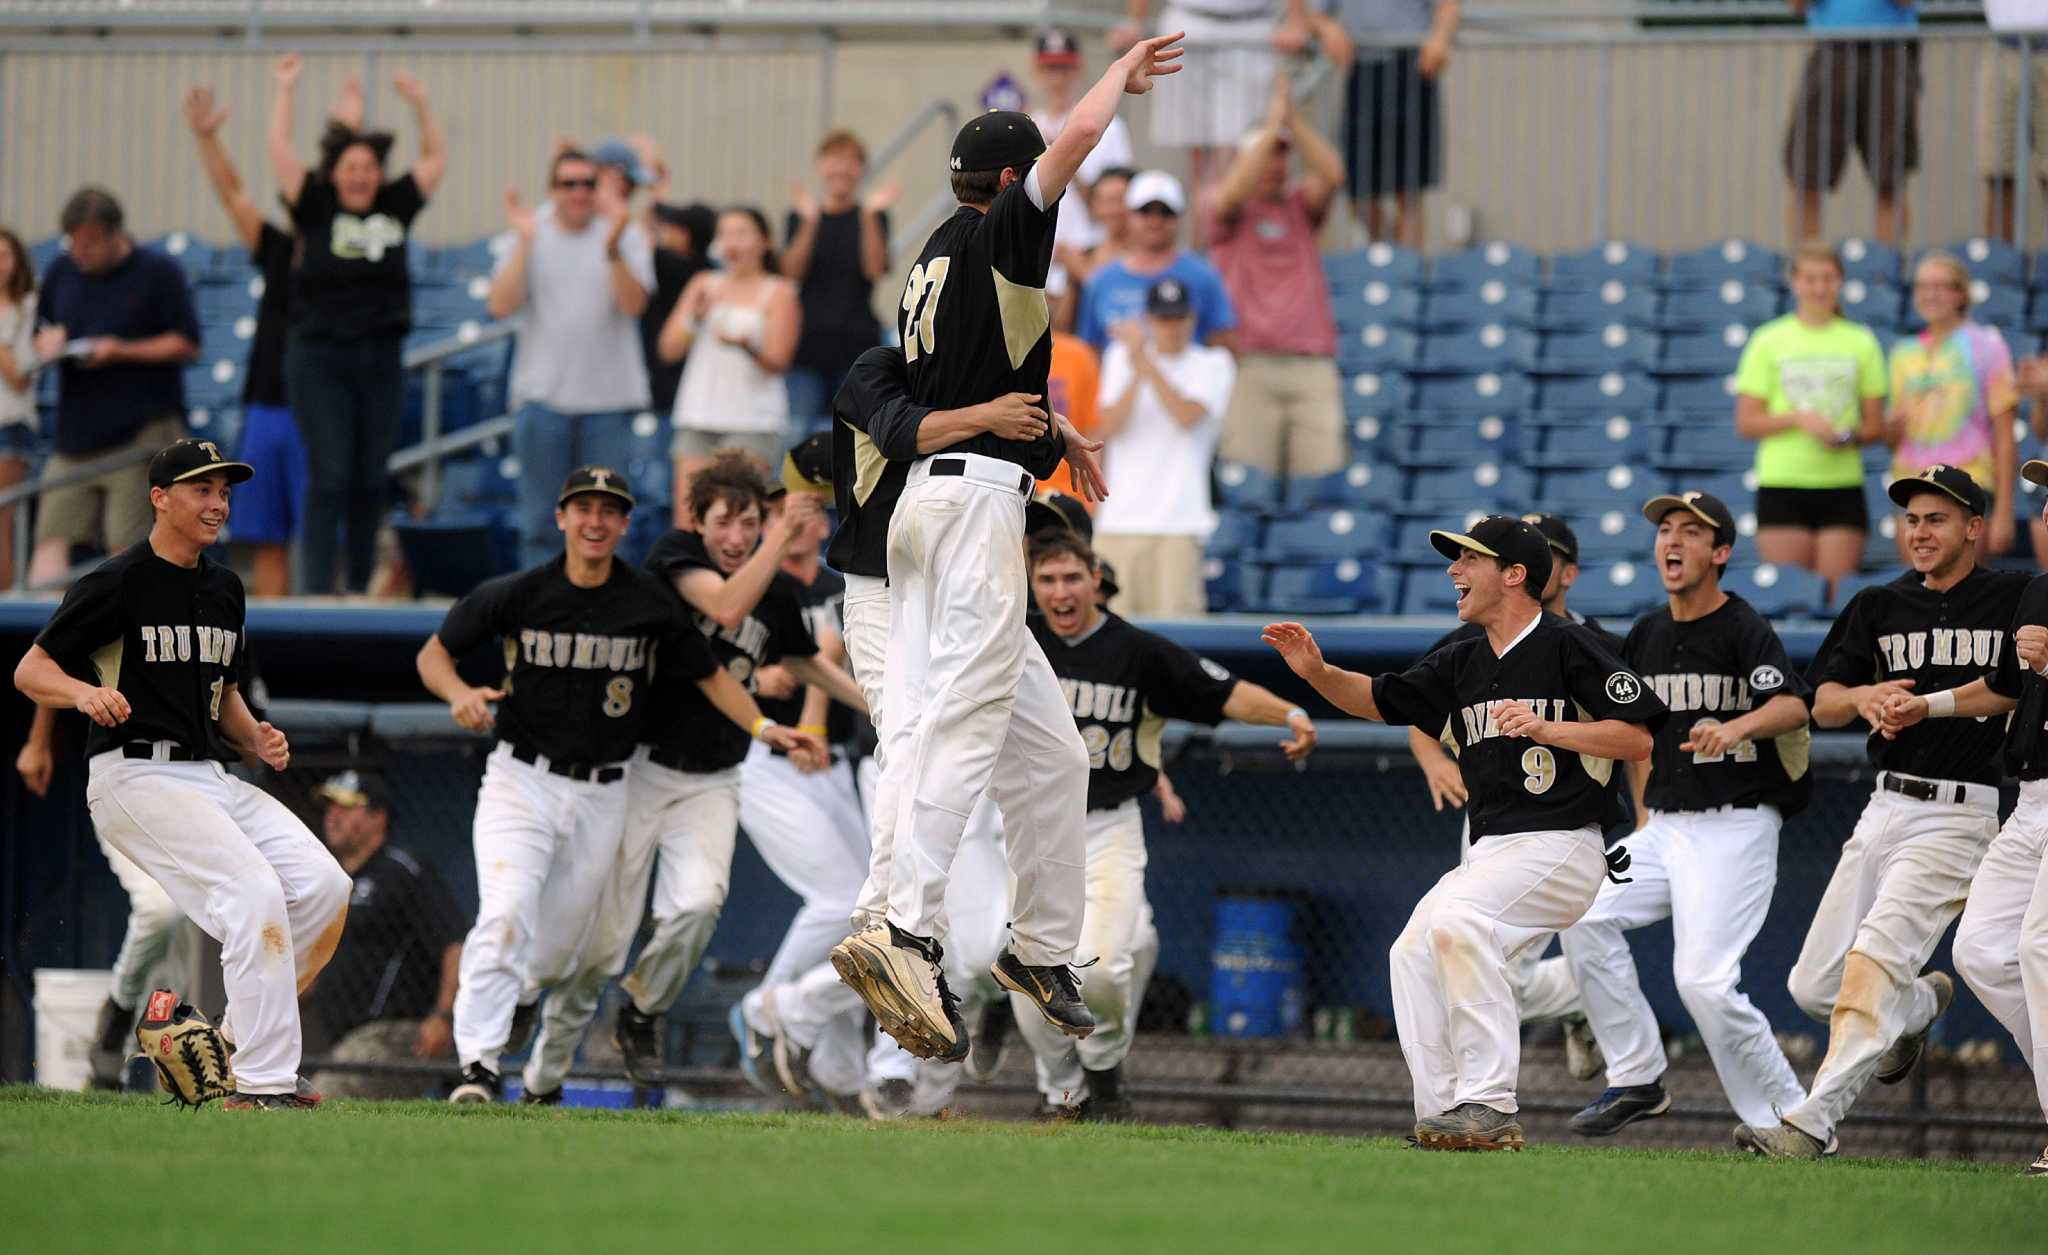 Trumbull shocks undefeated Greenwich to win FCIAC baseball